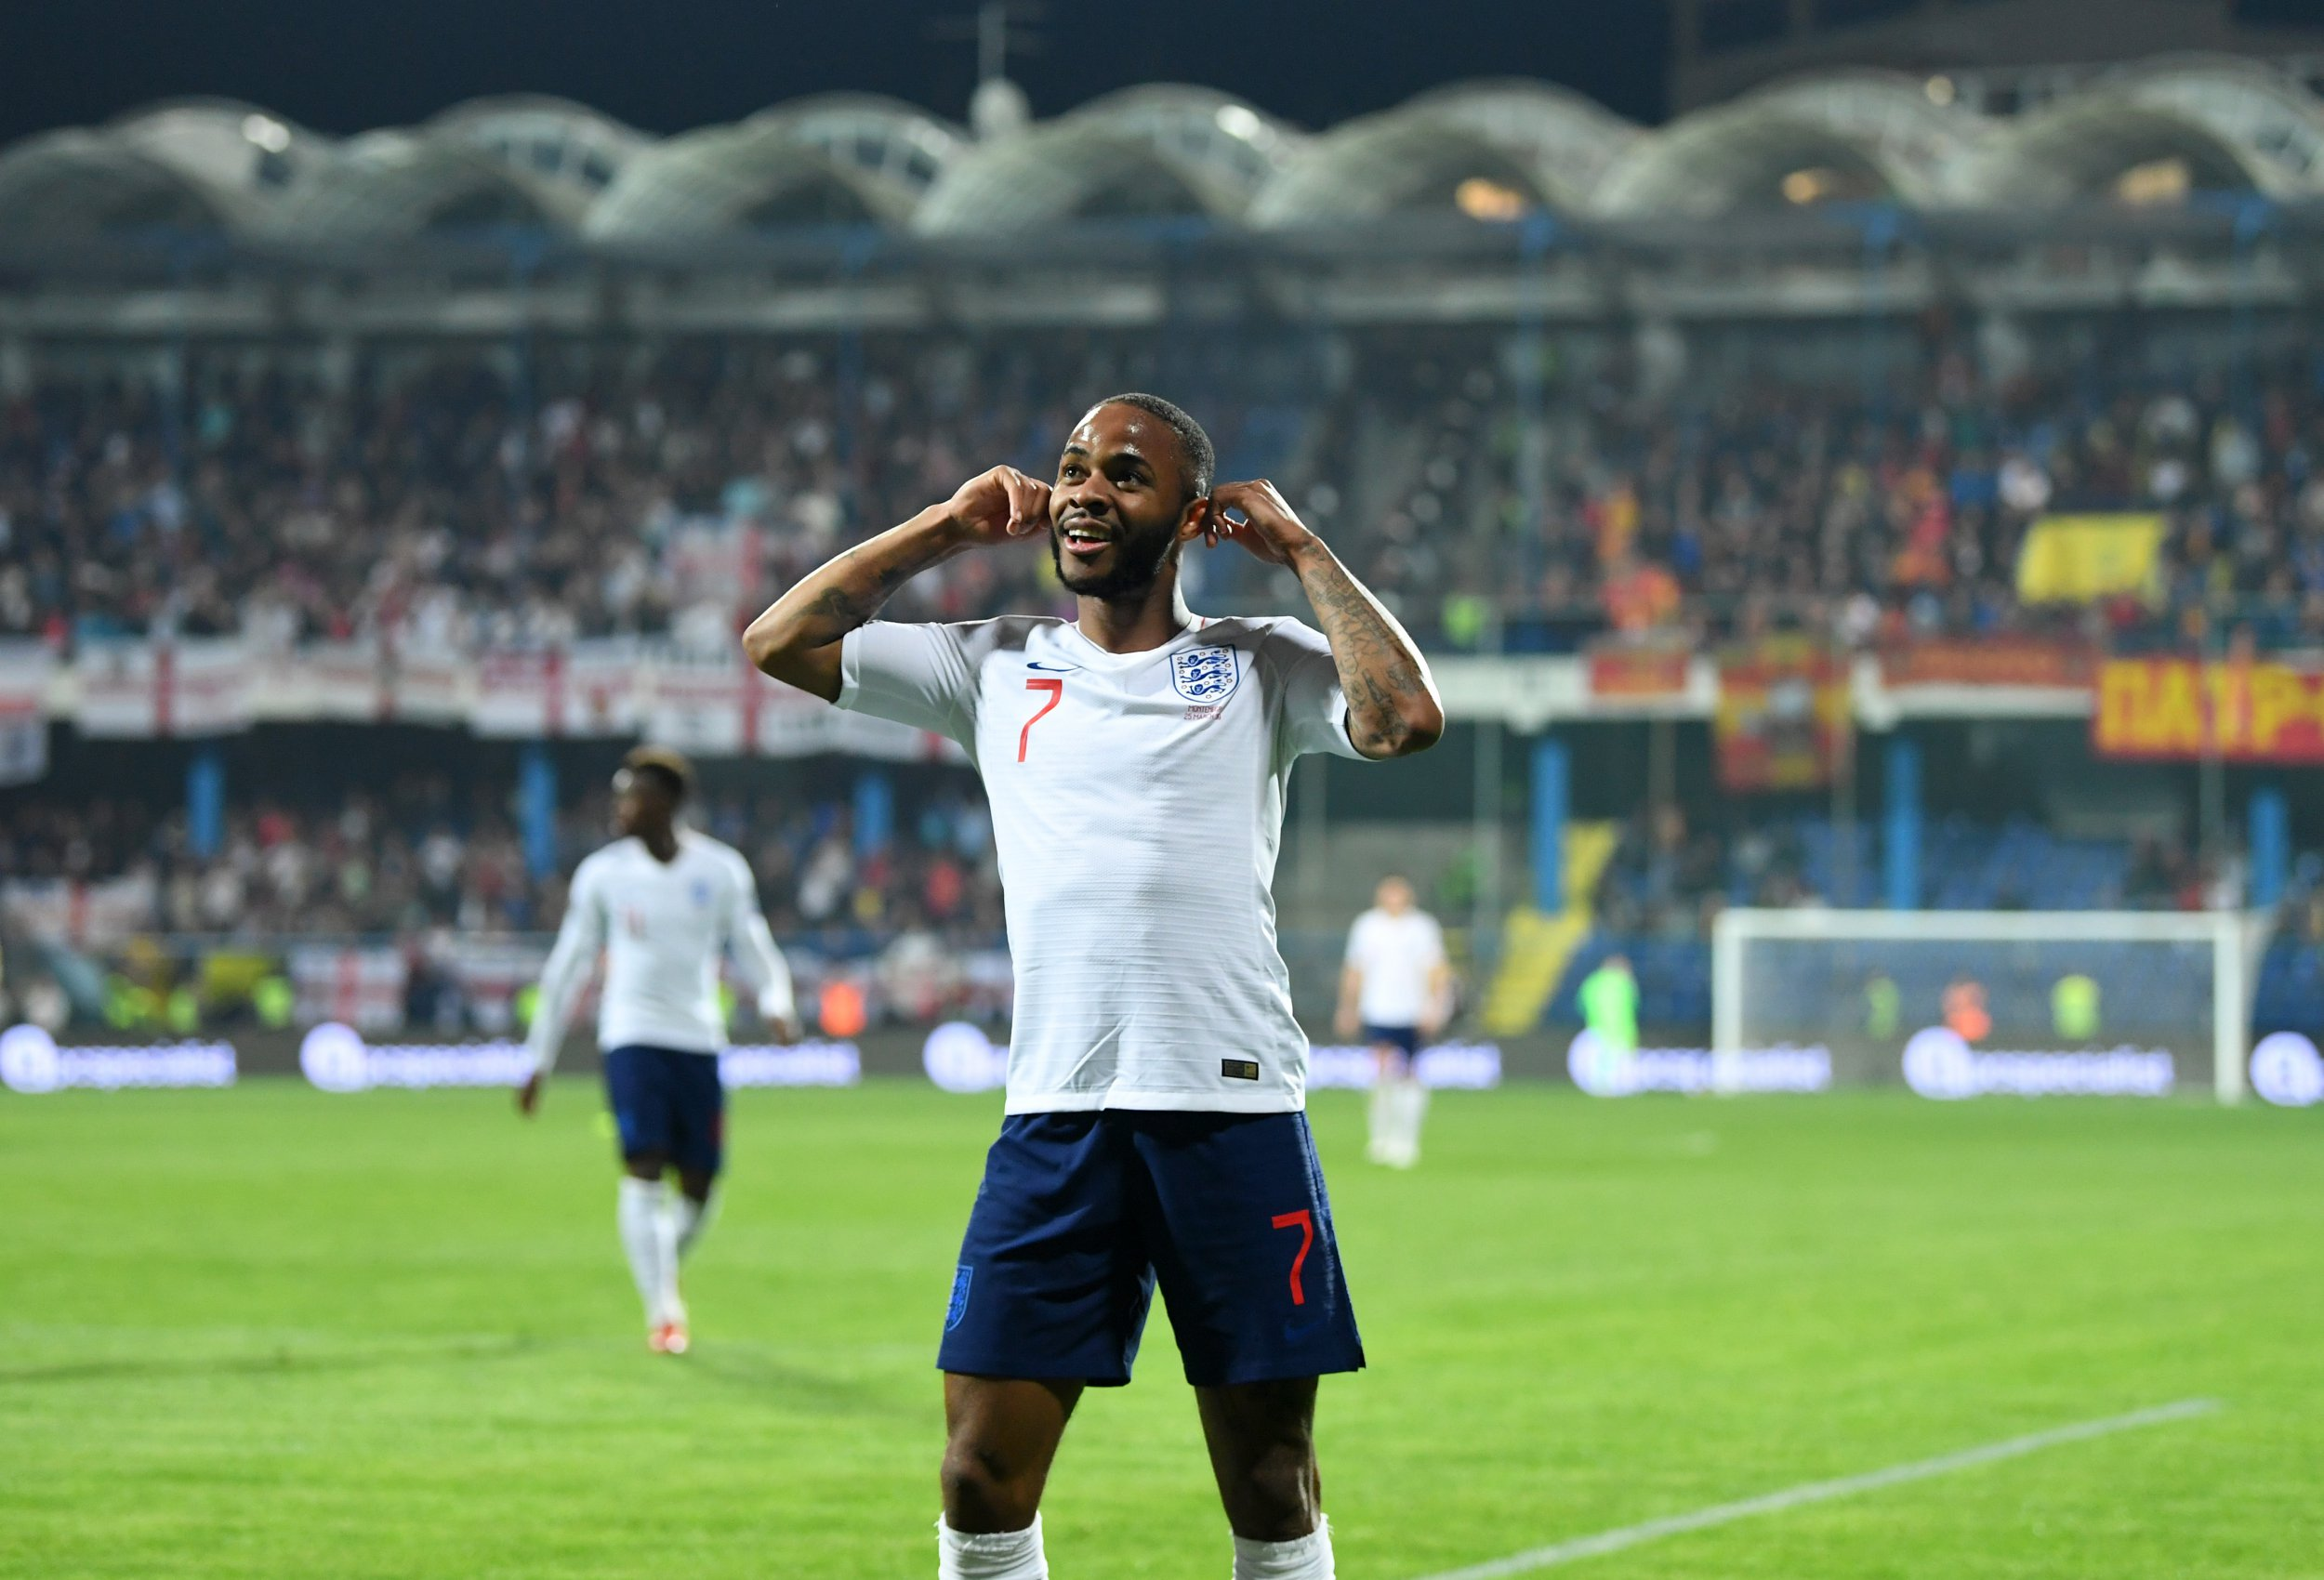 Raheem Sterling speaks out on racist abuse and explains goal celebration vs Montenegro